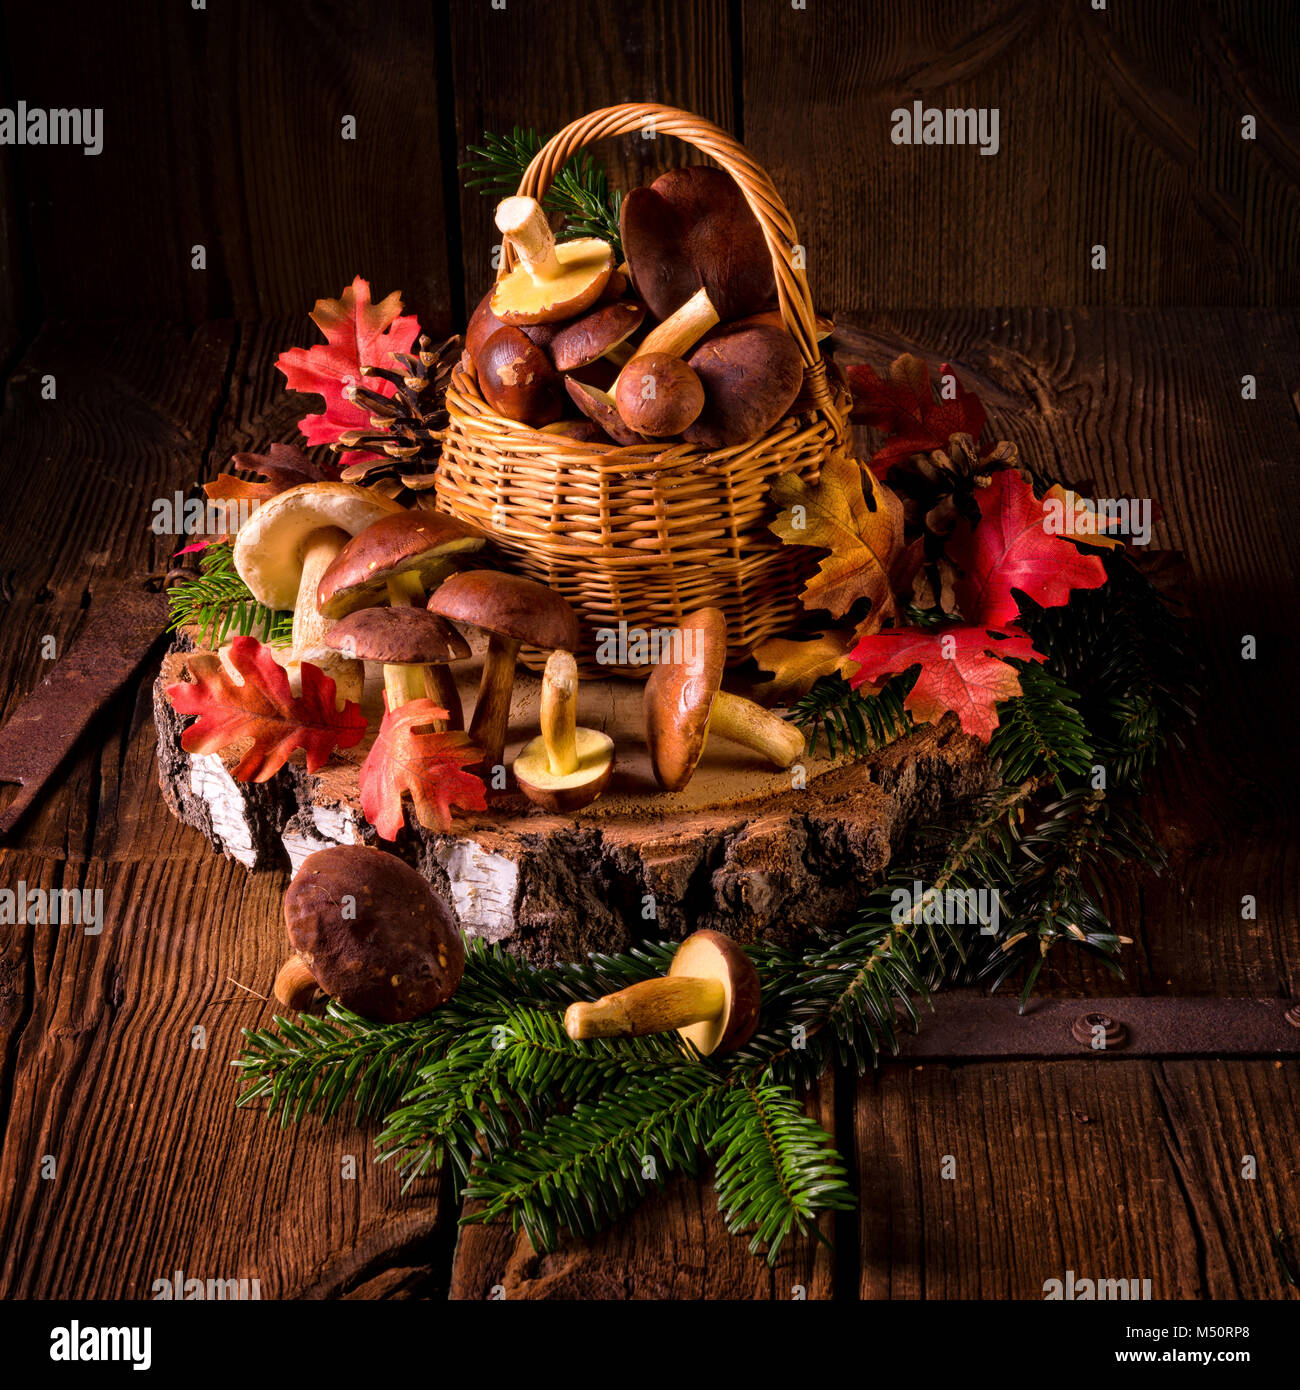 forest mushroom collections - Stock Image